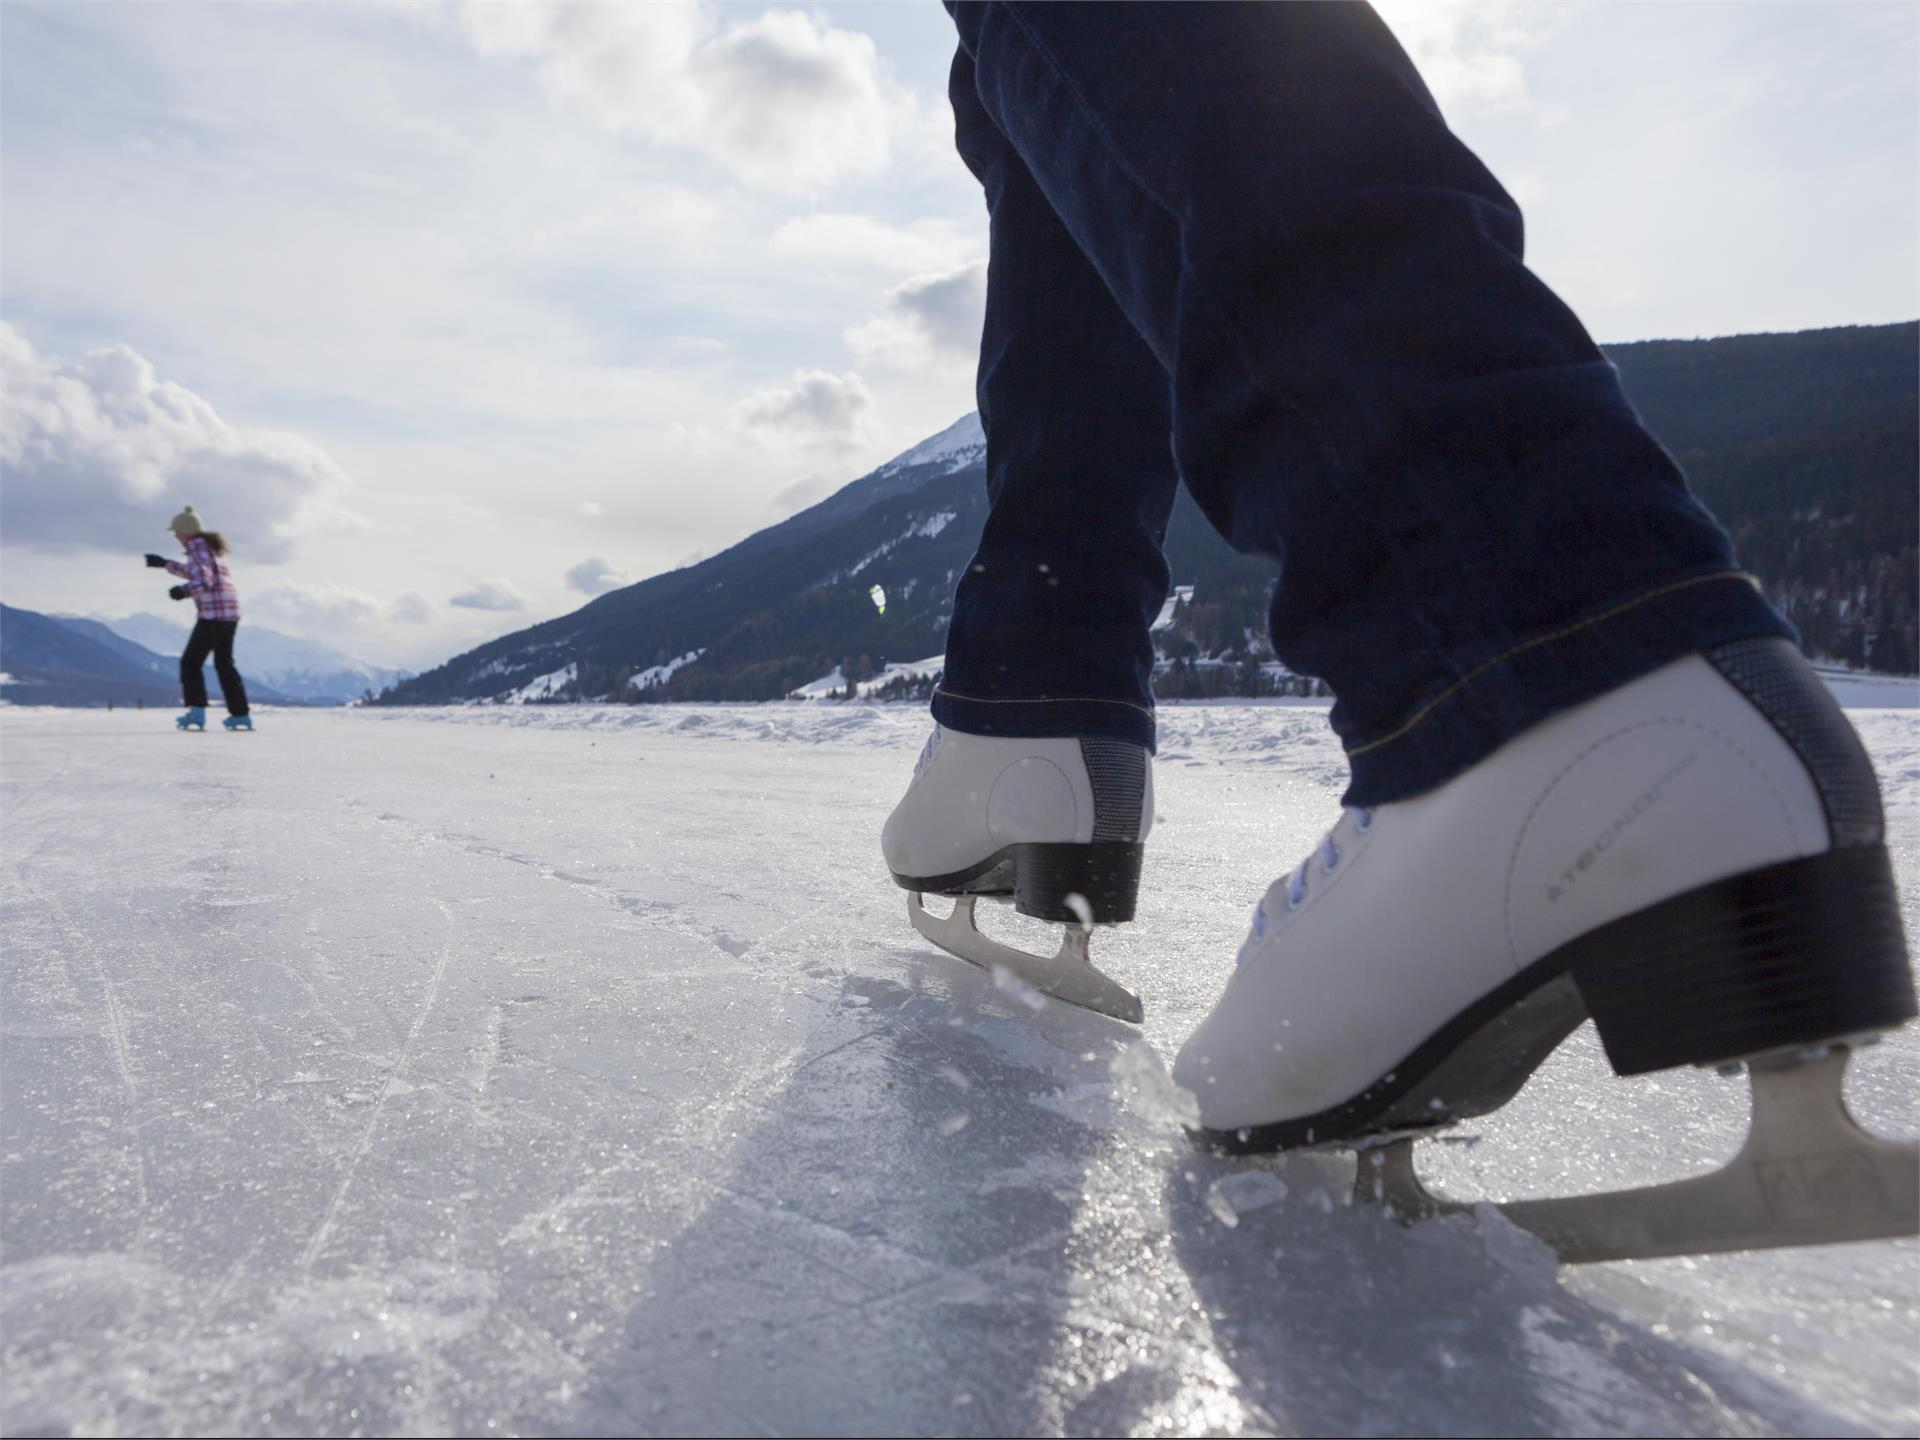 Ice skating on the lake Reschensee